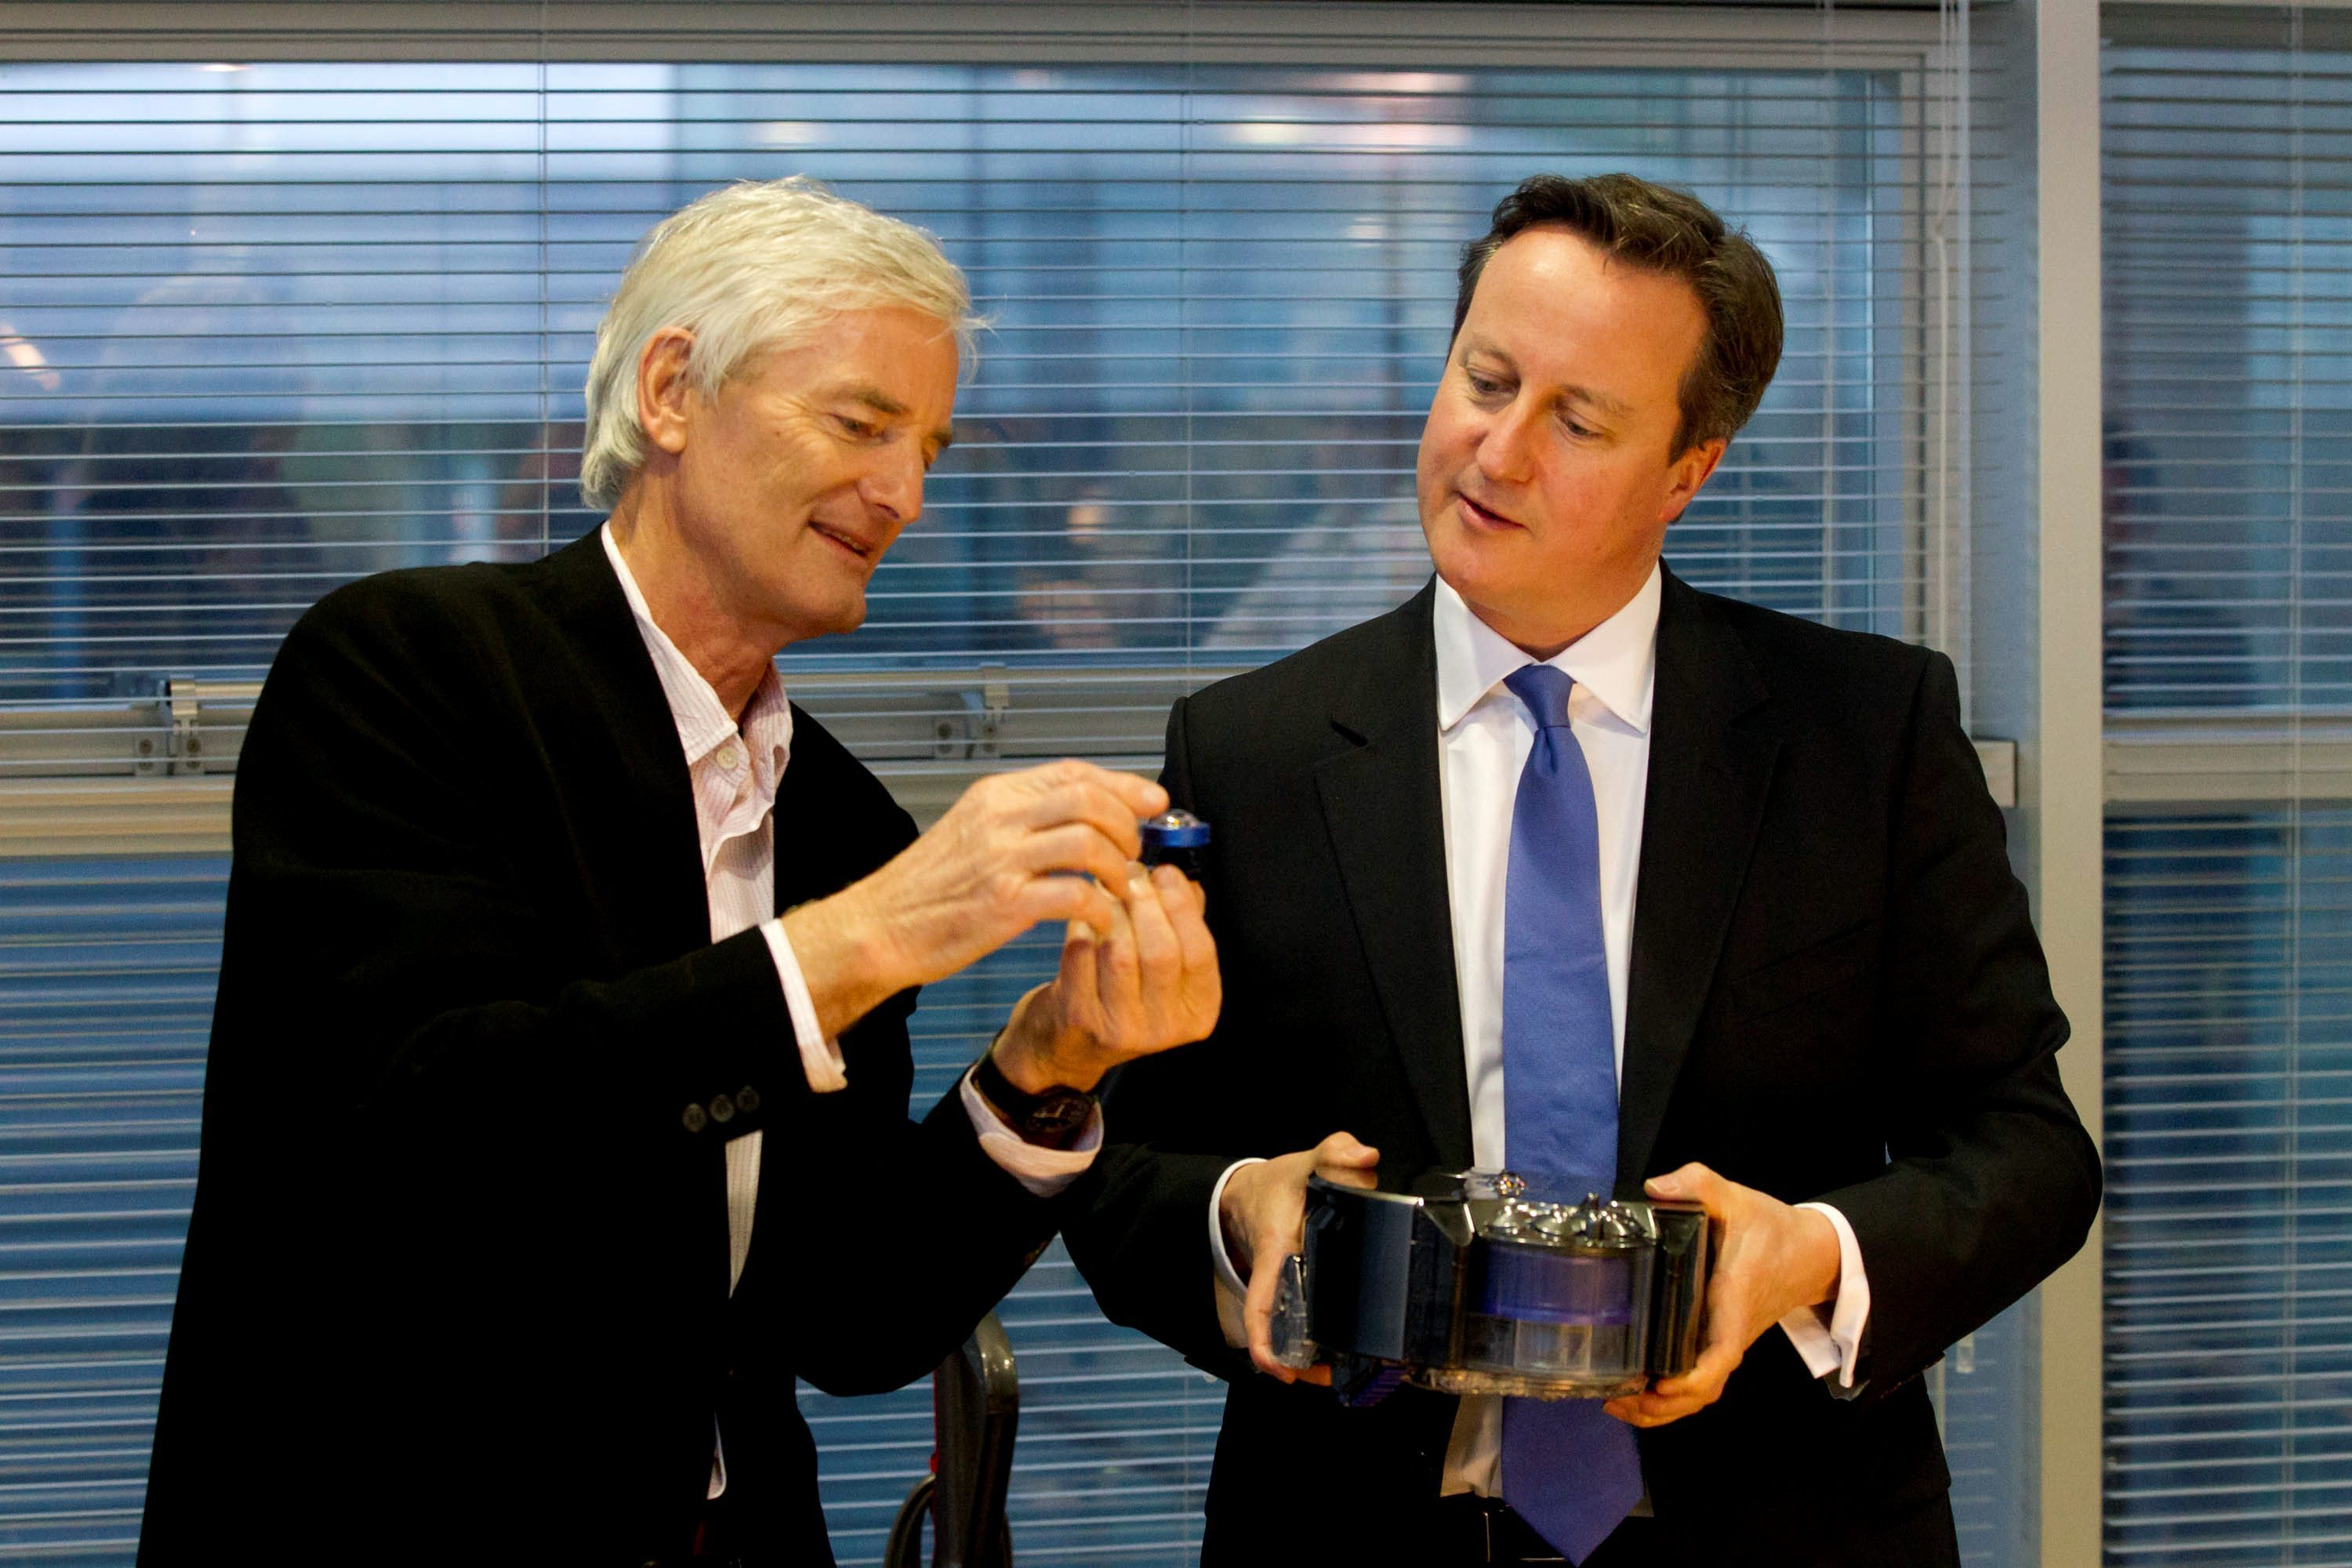 Prime Minister David Cameron (right) at the Dyson Vacuum Factory in Malmesbury with James Dyson.